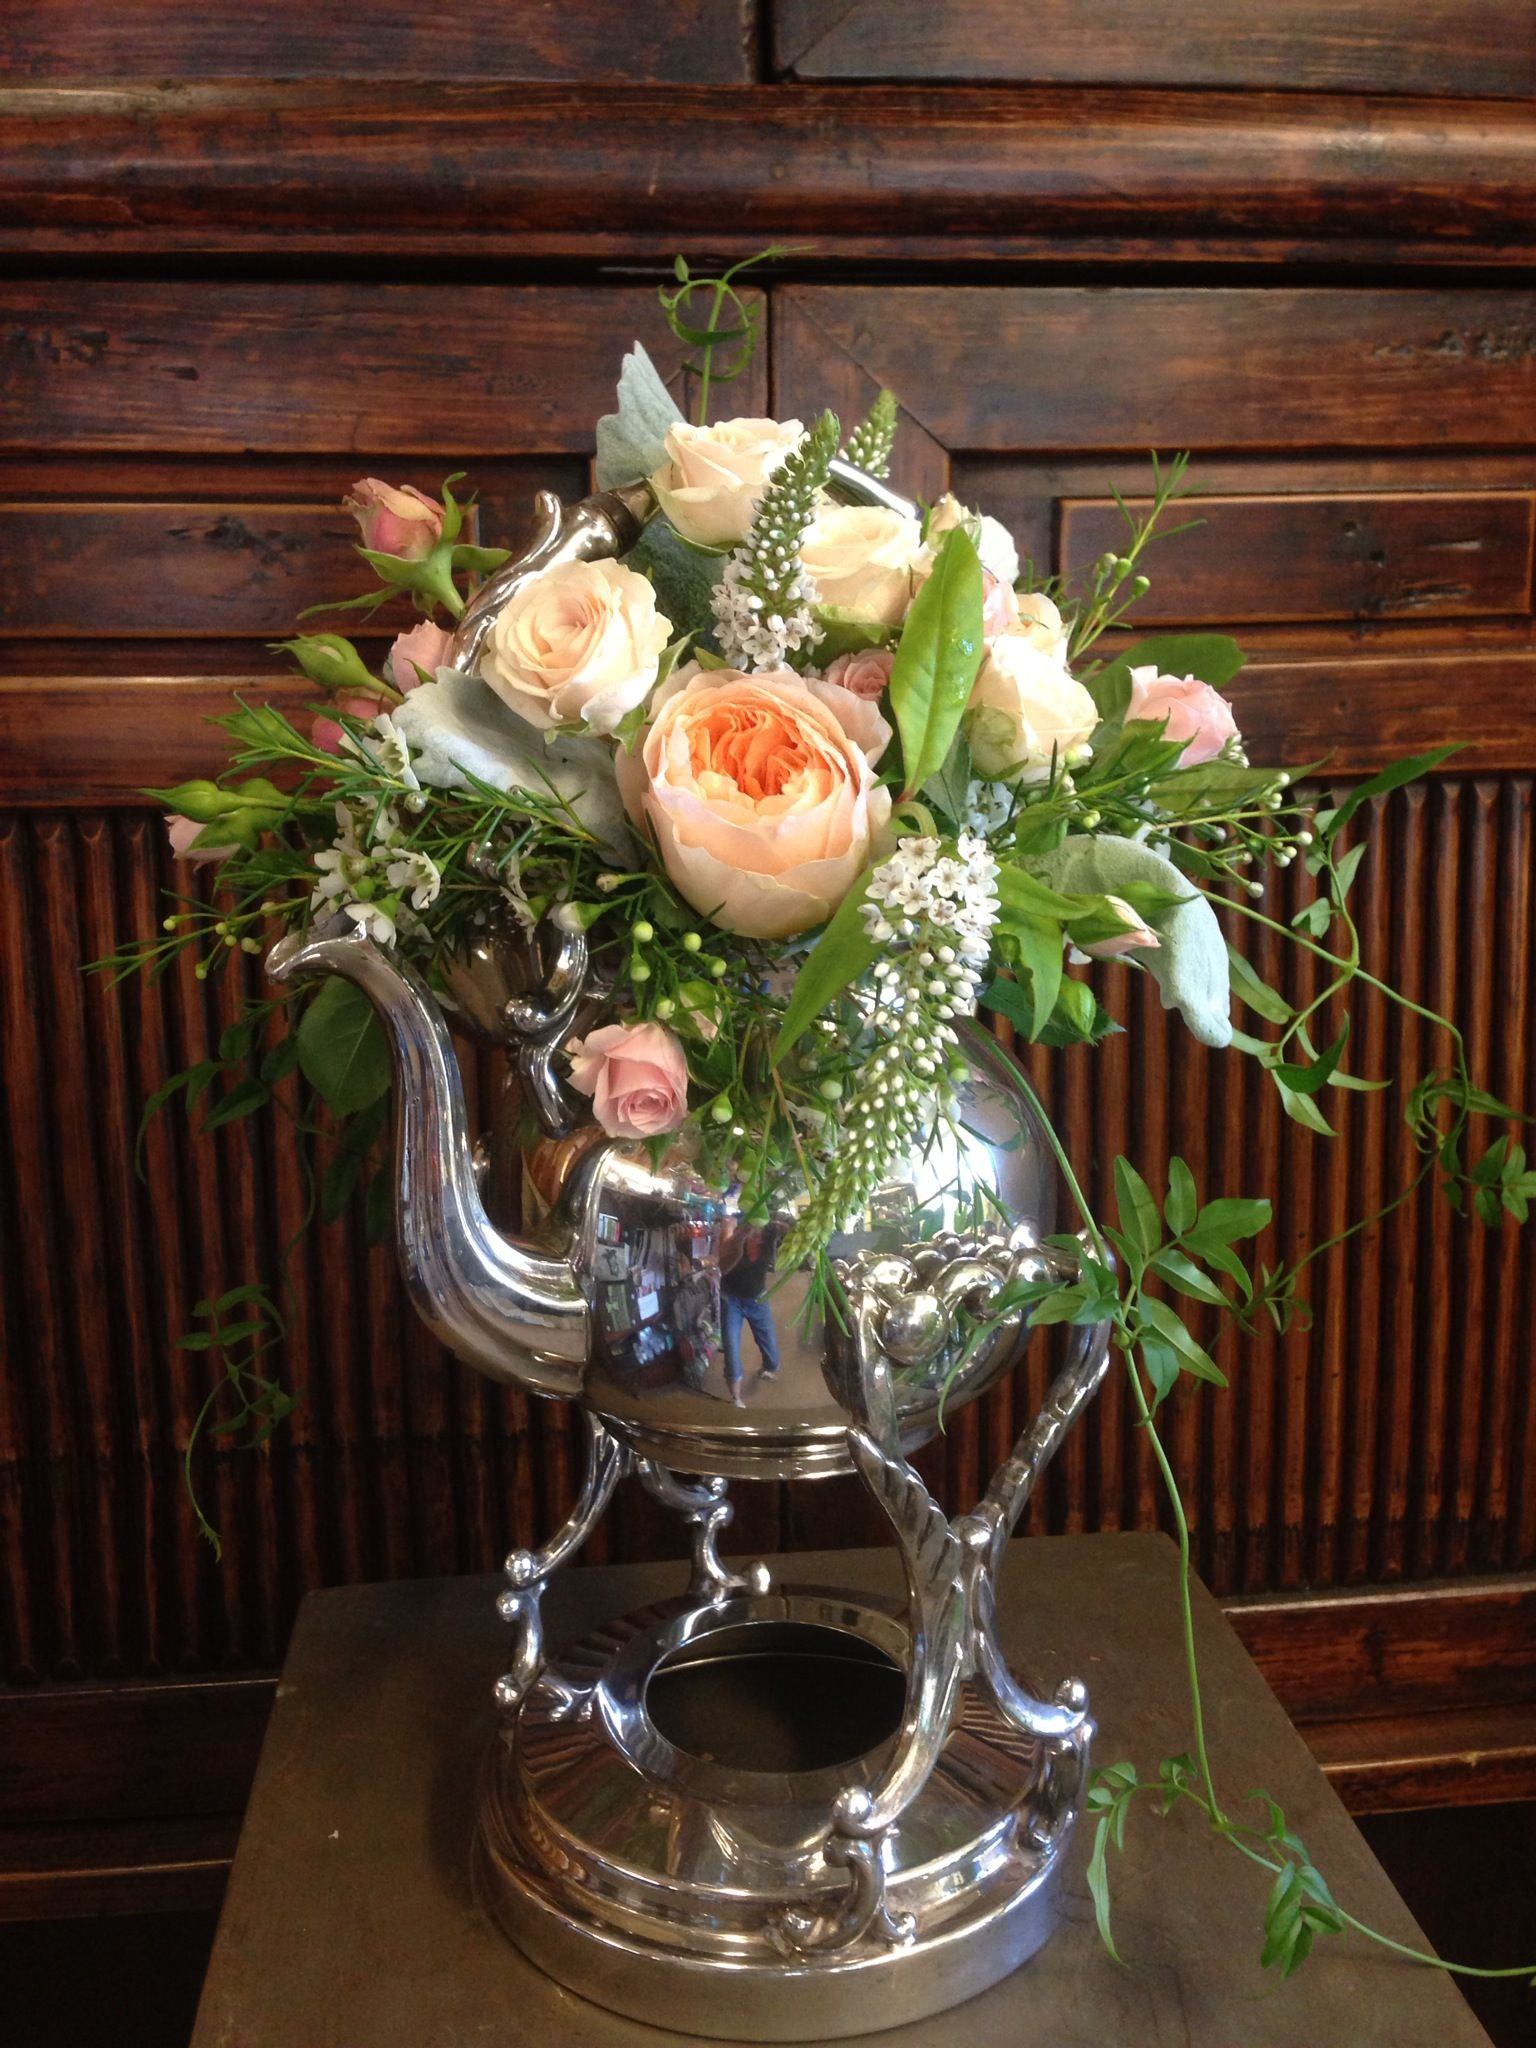 Peach flowers in silver vase, Design by Artist Angela